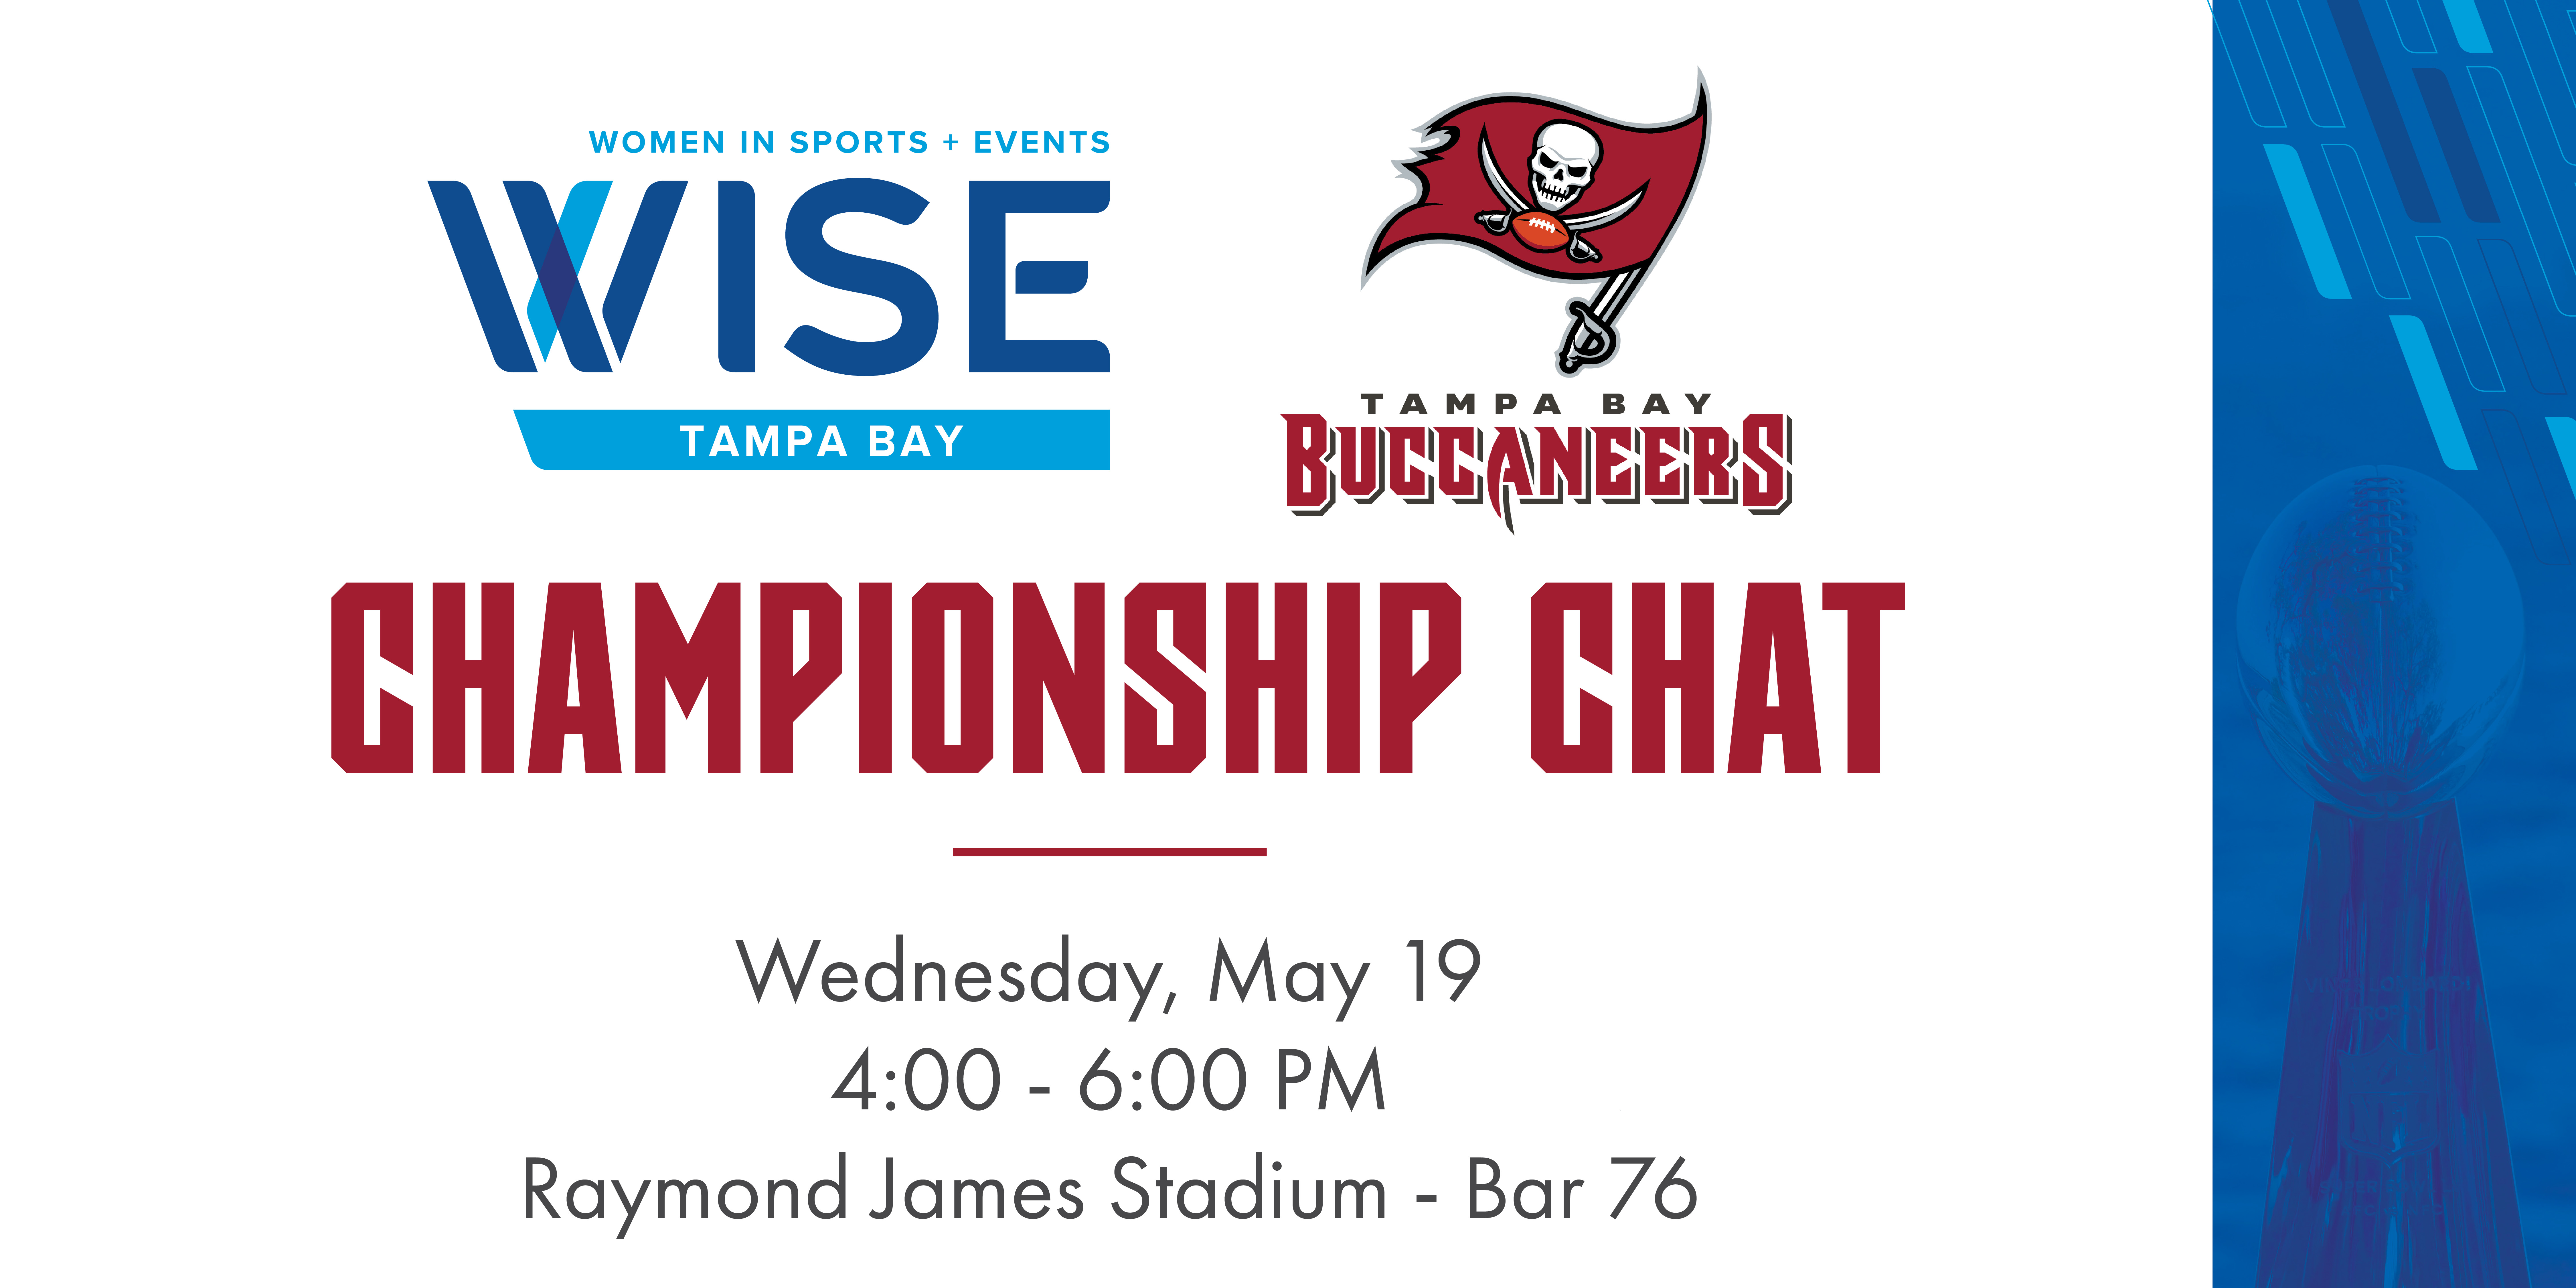 Image of Tampa Bay Buccaneers Championship Chat